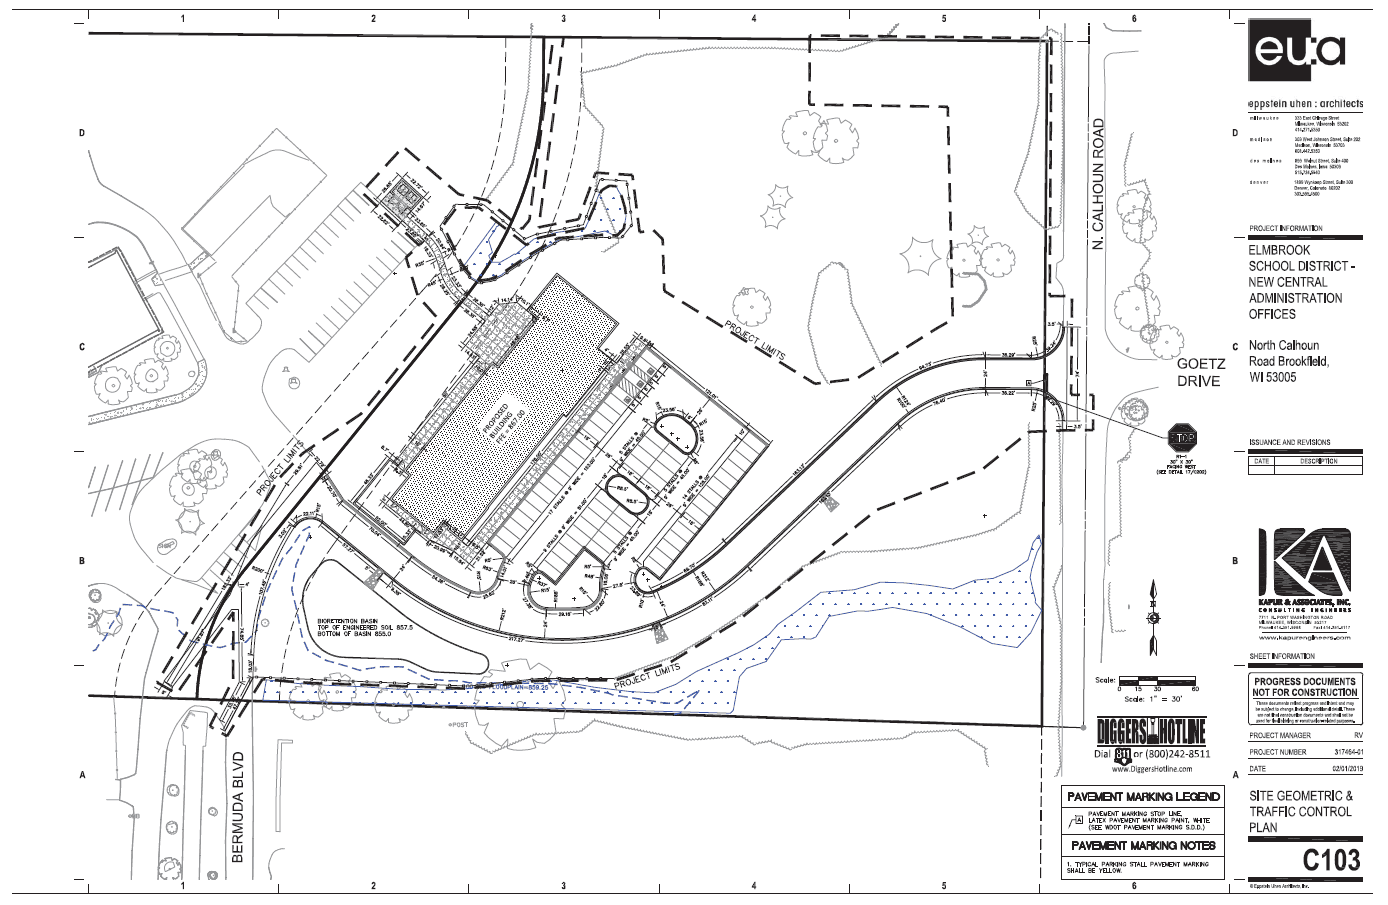 Elmbrook School District Administration Building - Site Plan